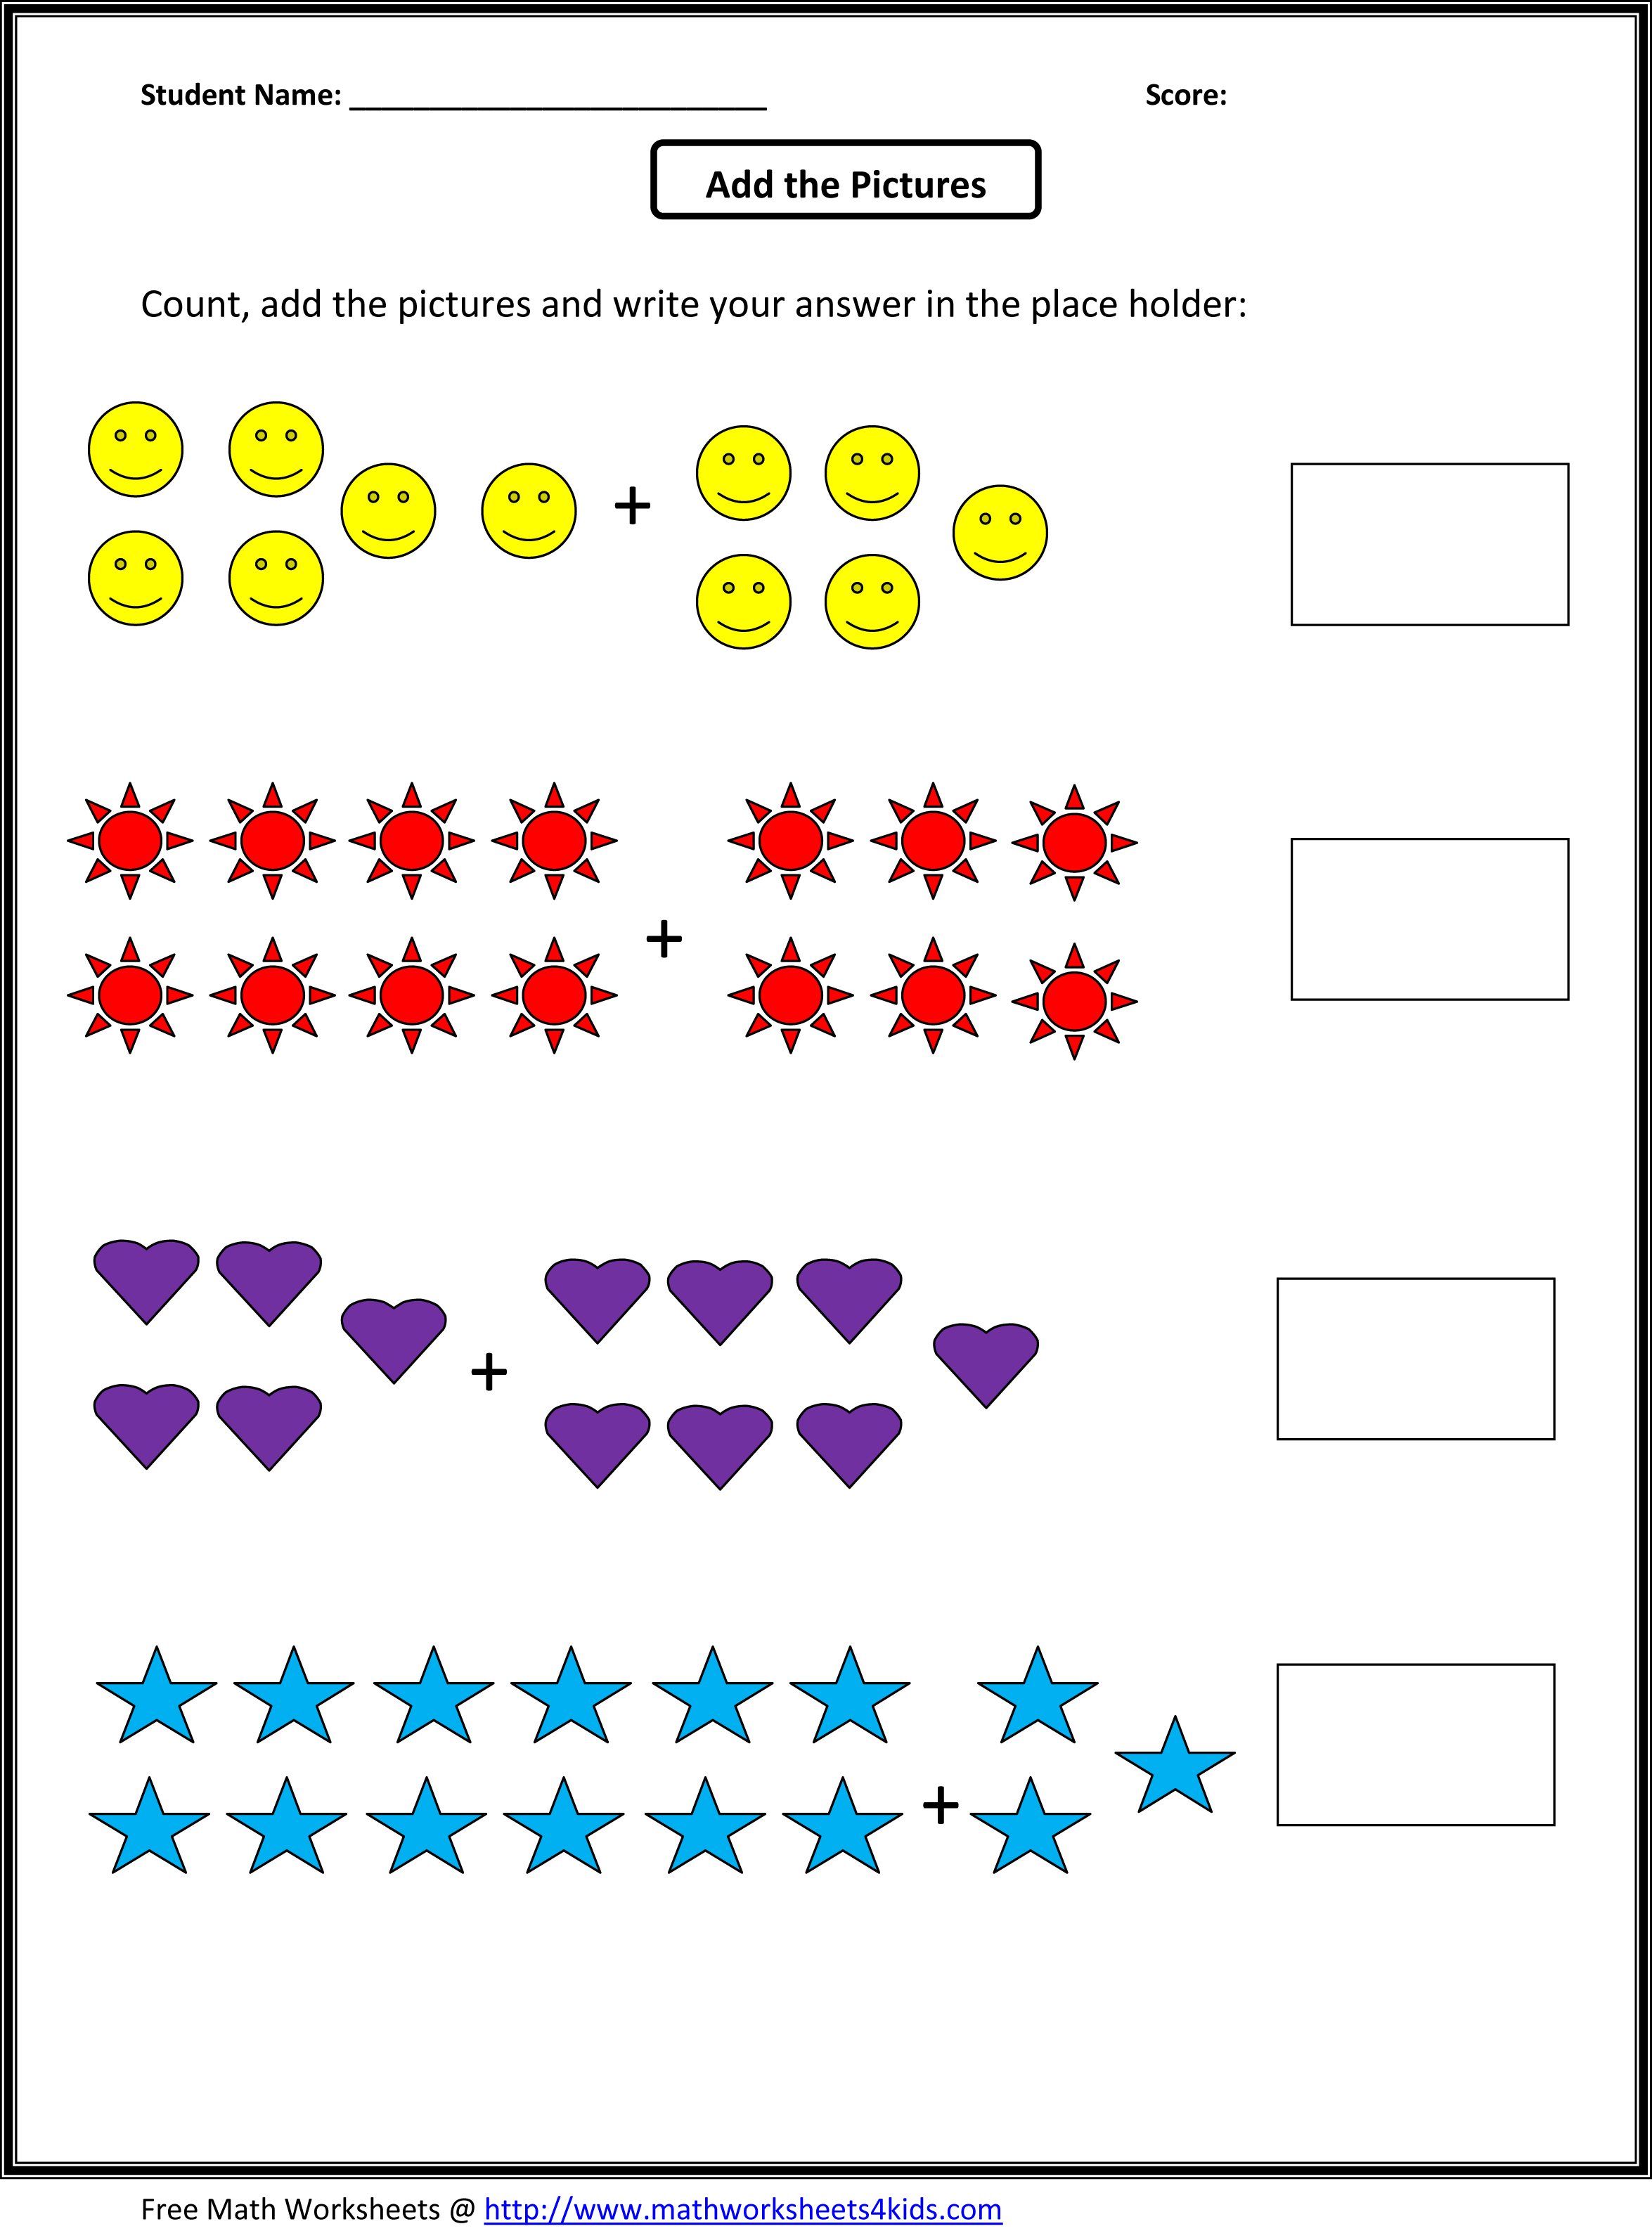 Proatmealus  Remarkable Grade  Maths Worksheet  Reocurent With Luxury Math Worksheets For St Grade Free  Reocurent With Divine Nocturnal Animals Worksheet Also Free Printable Touch Math Worksheets In Addition Electric Circuits Worksheets And Short A Sound Worksheet As Well As Comma Worksheets Nd Grade Additionally Syllable Division Worksheets From Reocurentcom With Proatmealus  Luxury Grade  Maths Worksheet  Reocurent With Divine Math Worksheets For St Grade Free  Reocurent And Remarkable Nocturnal Animals Worksheet Also Free Printable Touch Math Worksheets In Addition Electric Circuits Worksheets From Reocurentcom